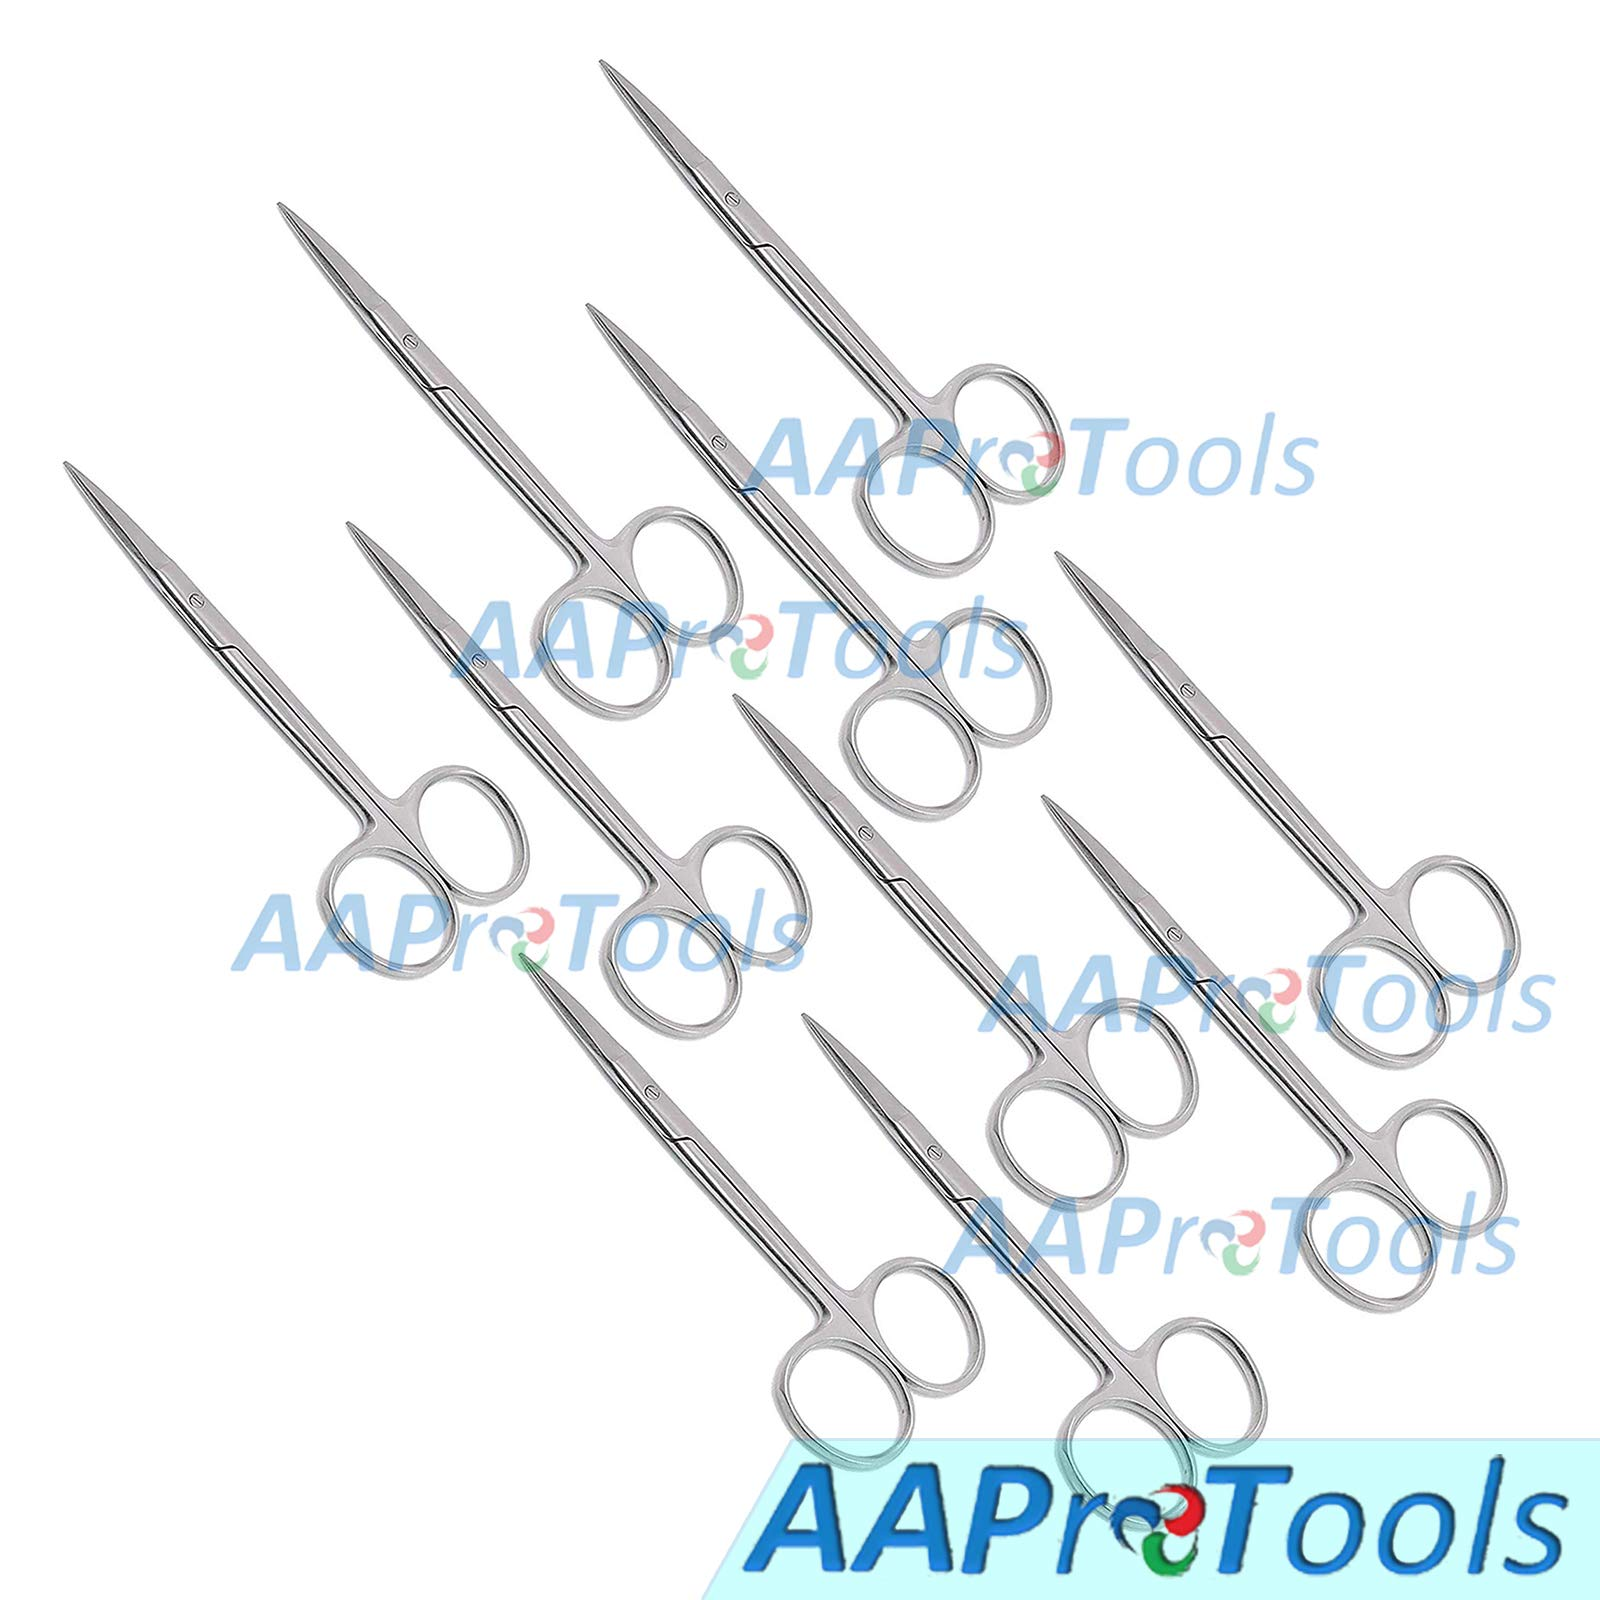 AAProTools Iris Micro Lab Sharp Scissors, 4.5'' (11.43cm) Fine Point Straight, Stainless Steel (Pack of 10) by AAProTools